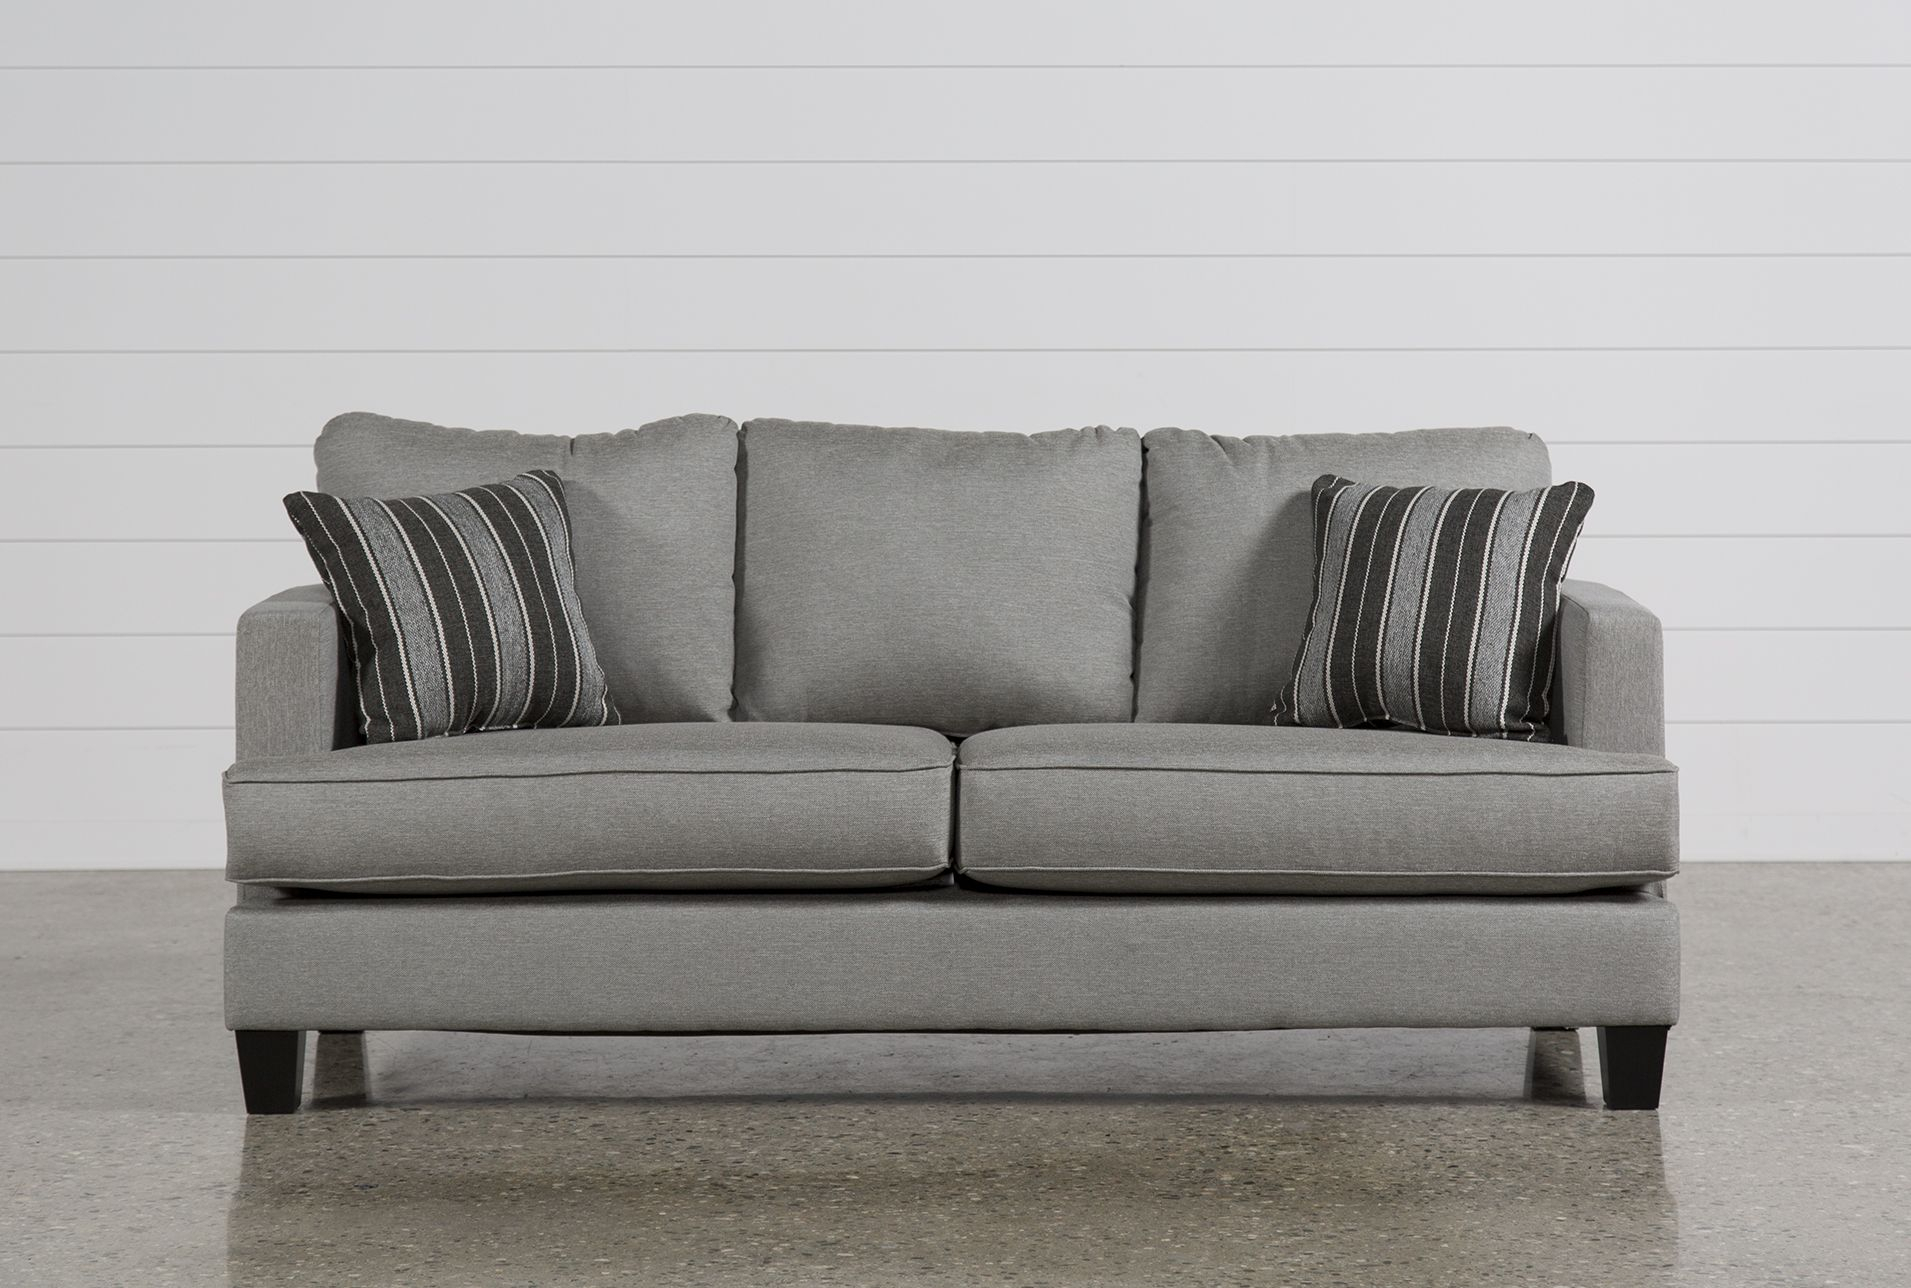 Grace Sofa In 2018 | Products | Pinterest | Sofa, Futon Chair And Regarding Grace Sofa Chairs (Image 16 of 25)